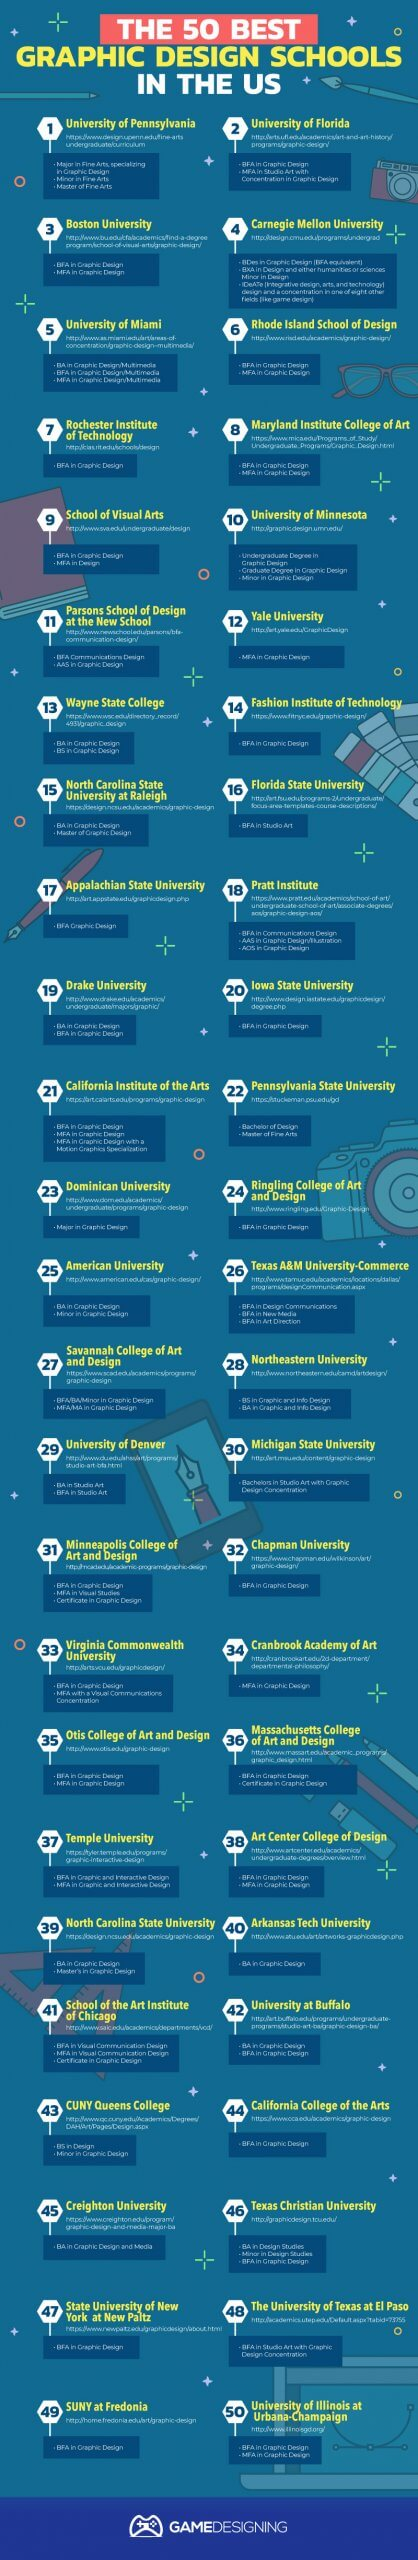 Study Graphic Design In Some Of The Finest Schools In The Us Online And In Campus